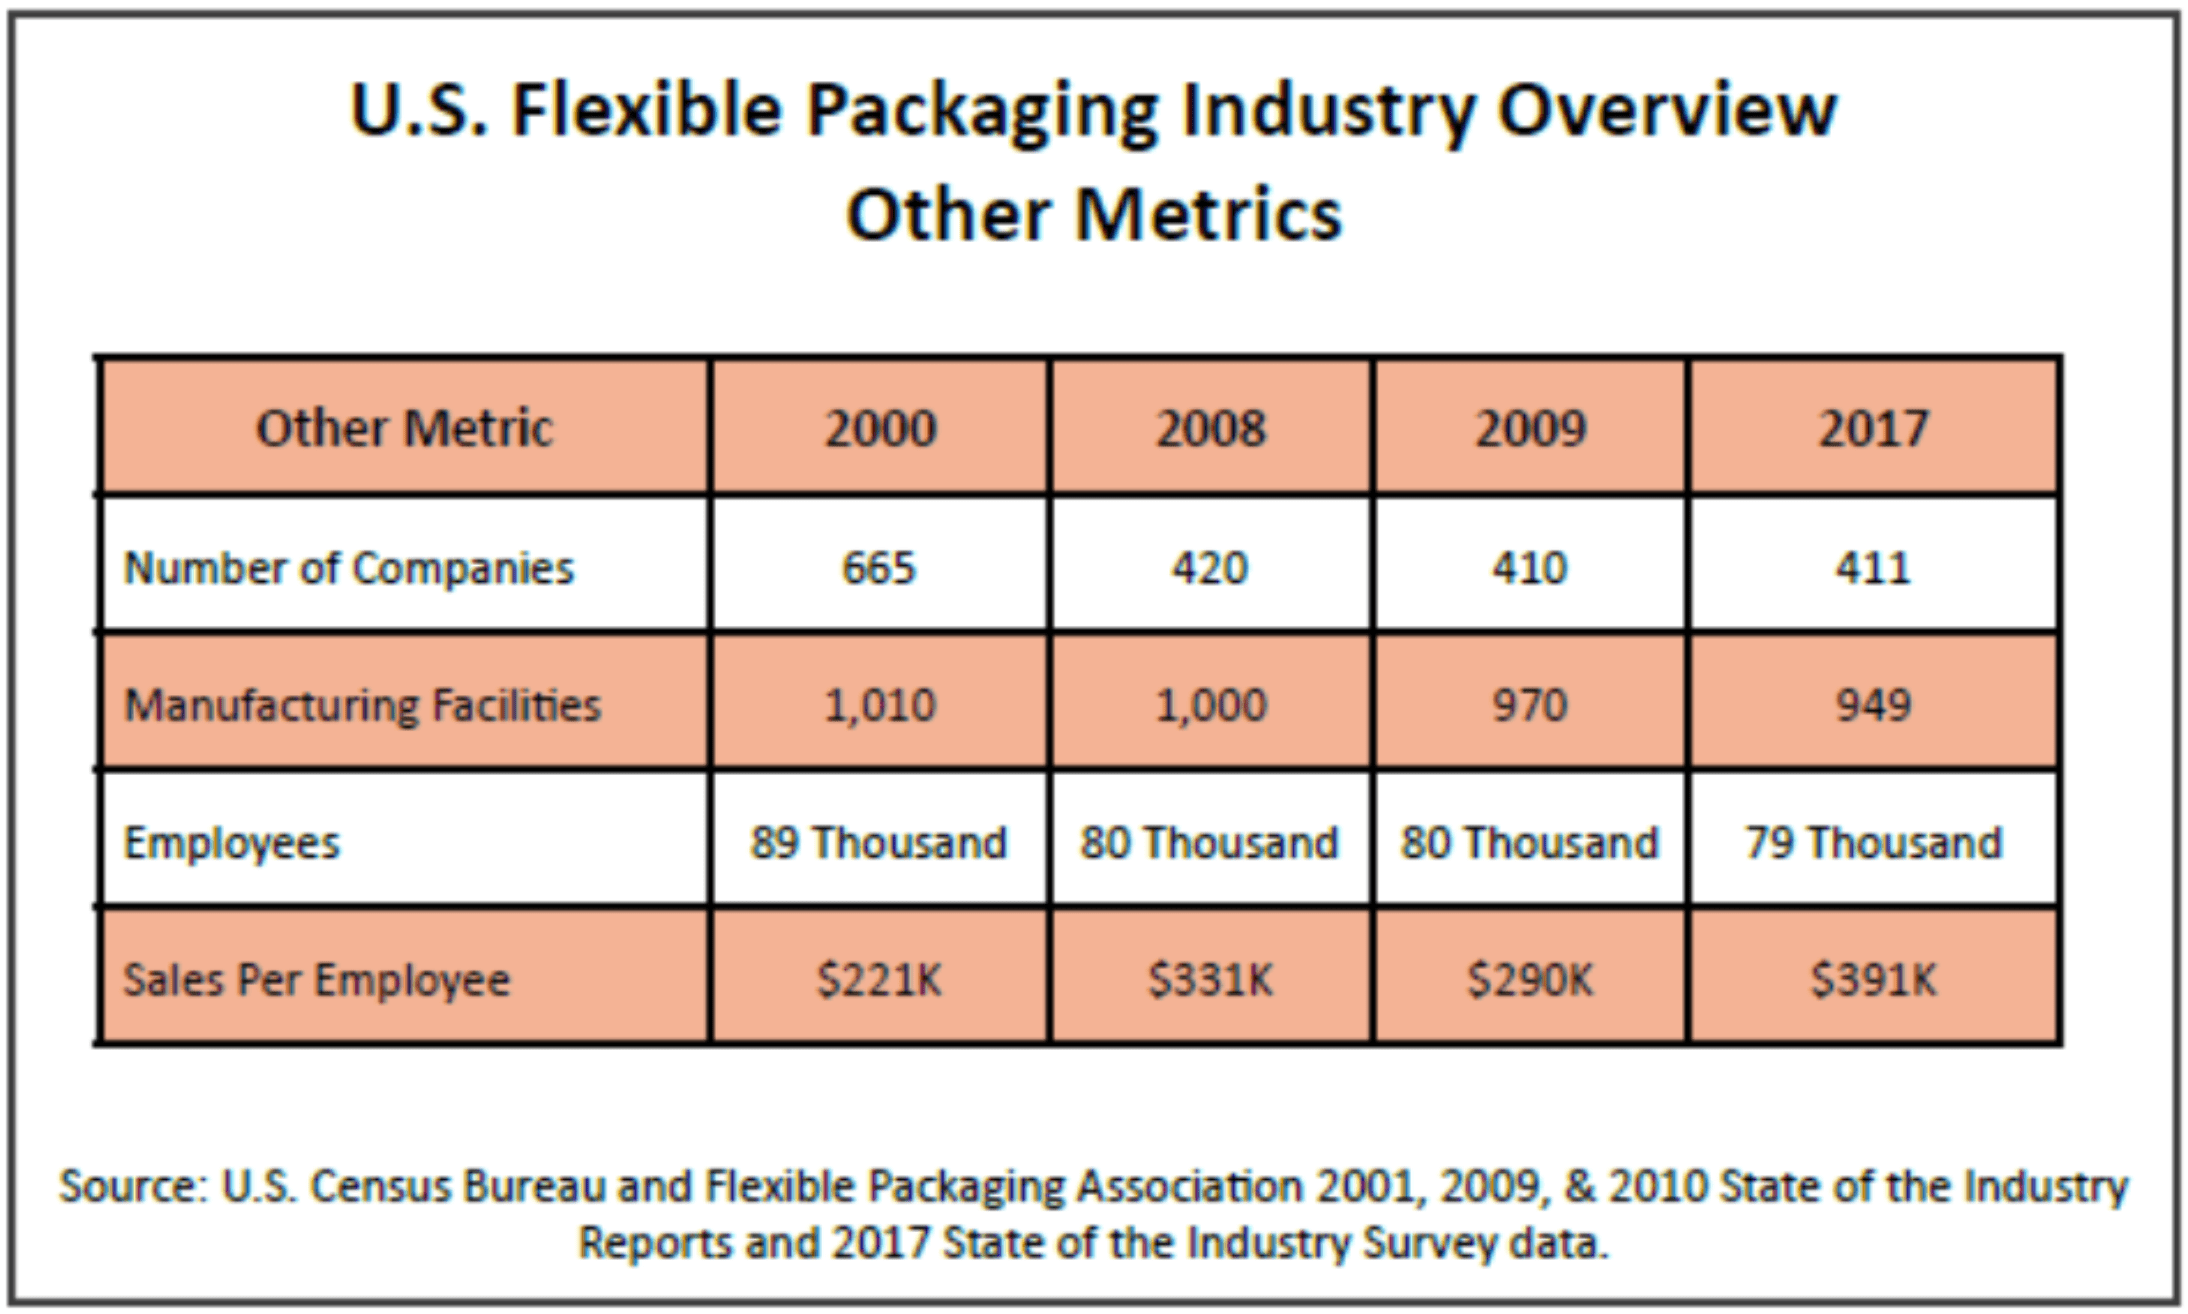 Flexible Packaging Industry Metrics